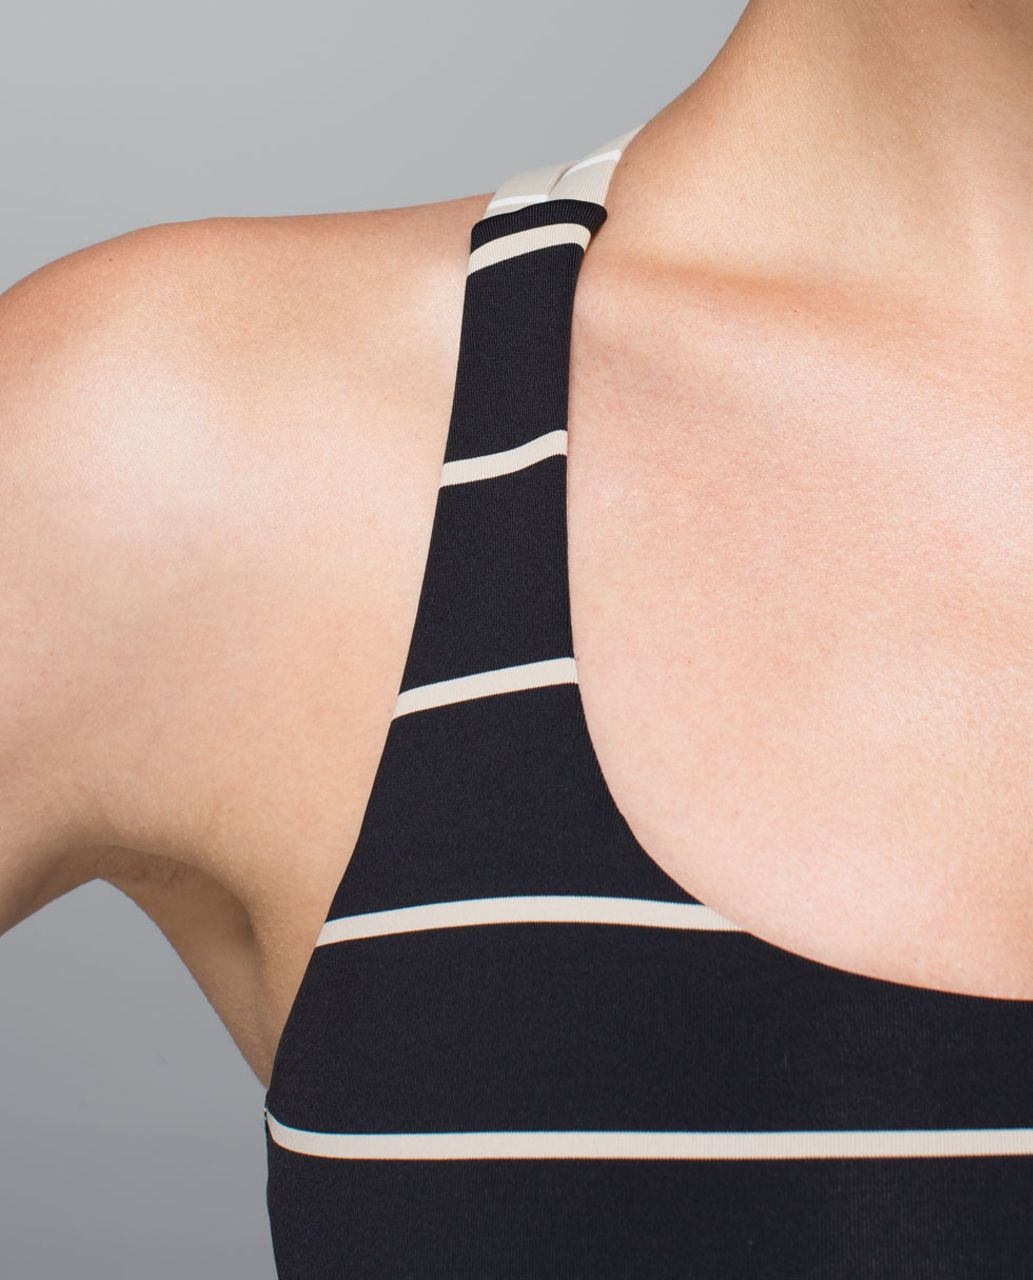 Lululemon Energy Bra - Cayman Stripe Black Mojave Tan / Cayman Stripe Mojave Tan Angel Wing